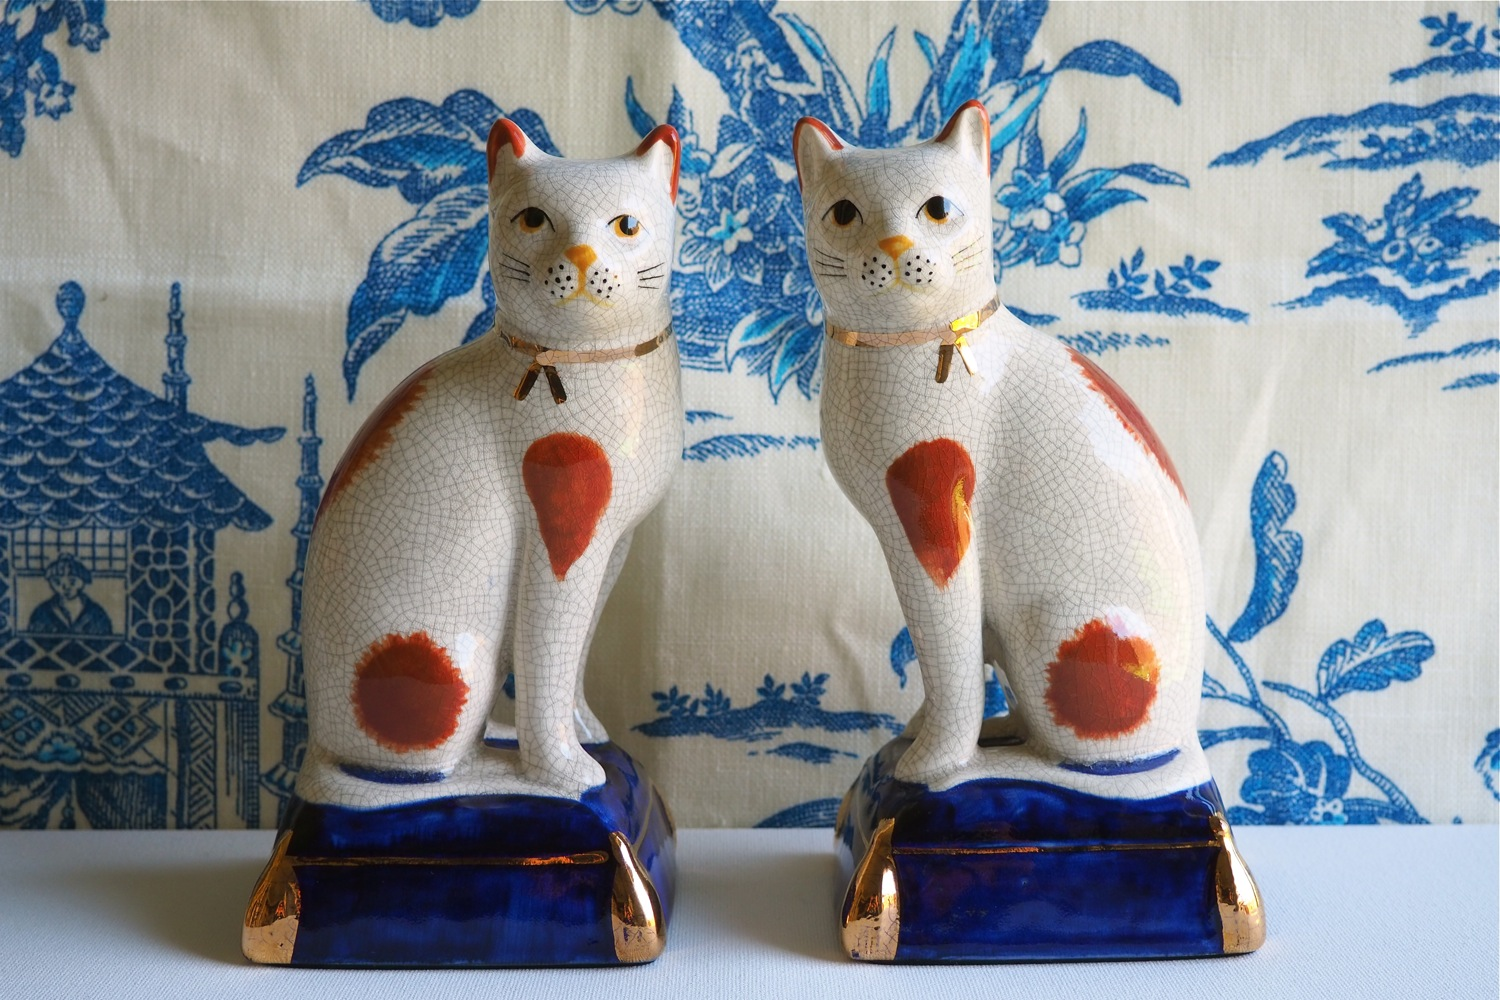 flatten the curve, flatten the coronavirus curve, flatten the COVID-19 curve, flatten the coronavirus COVID-19 curve, coronavirus pandemic 2020, Vintage Finds Fitz and Floyd Mantle Cats, Vintage Fitz & Floyd Japanese Ceramic Mantle Cats, Chinoiserie mantle cats, blue and white mantle cats, vintage chinoiserie blue and white mantle cats,